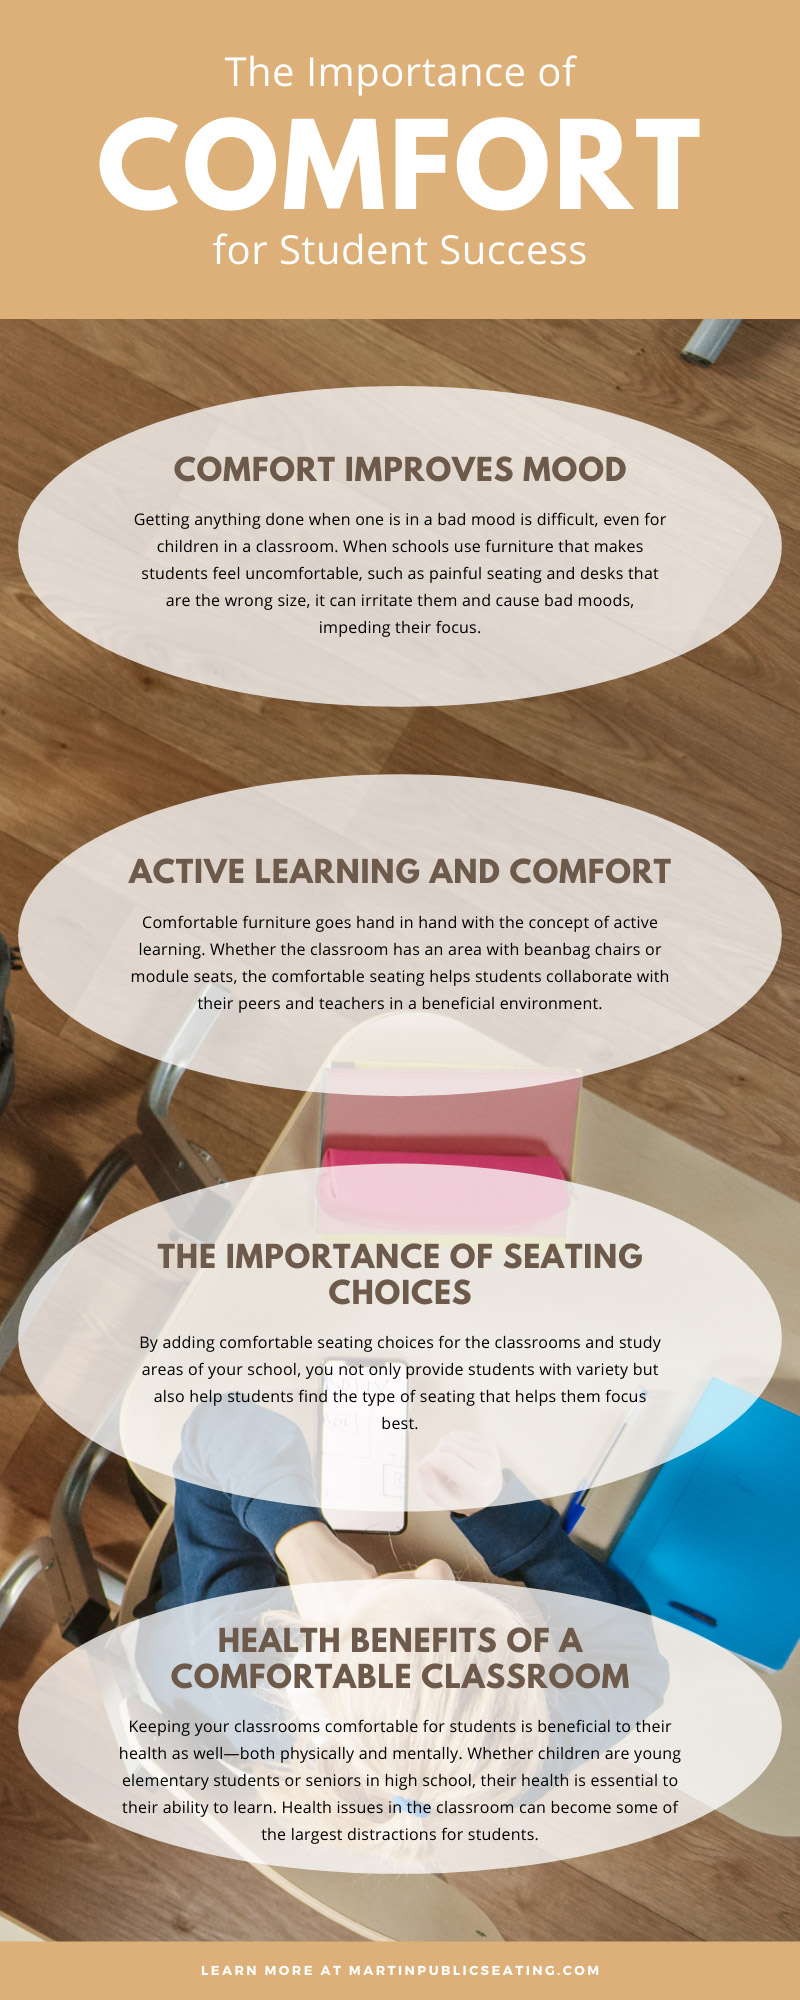 The Importance of Comfort for Student Success